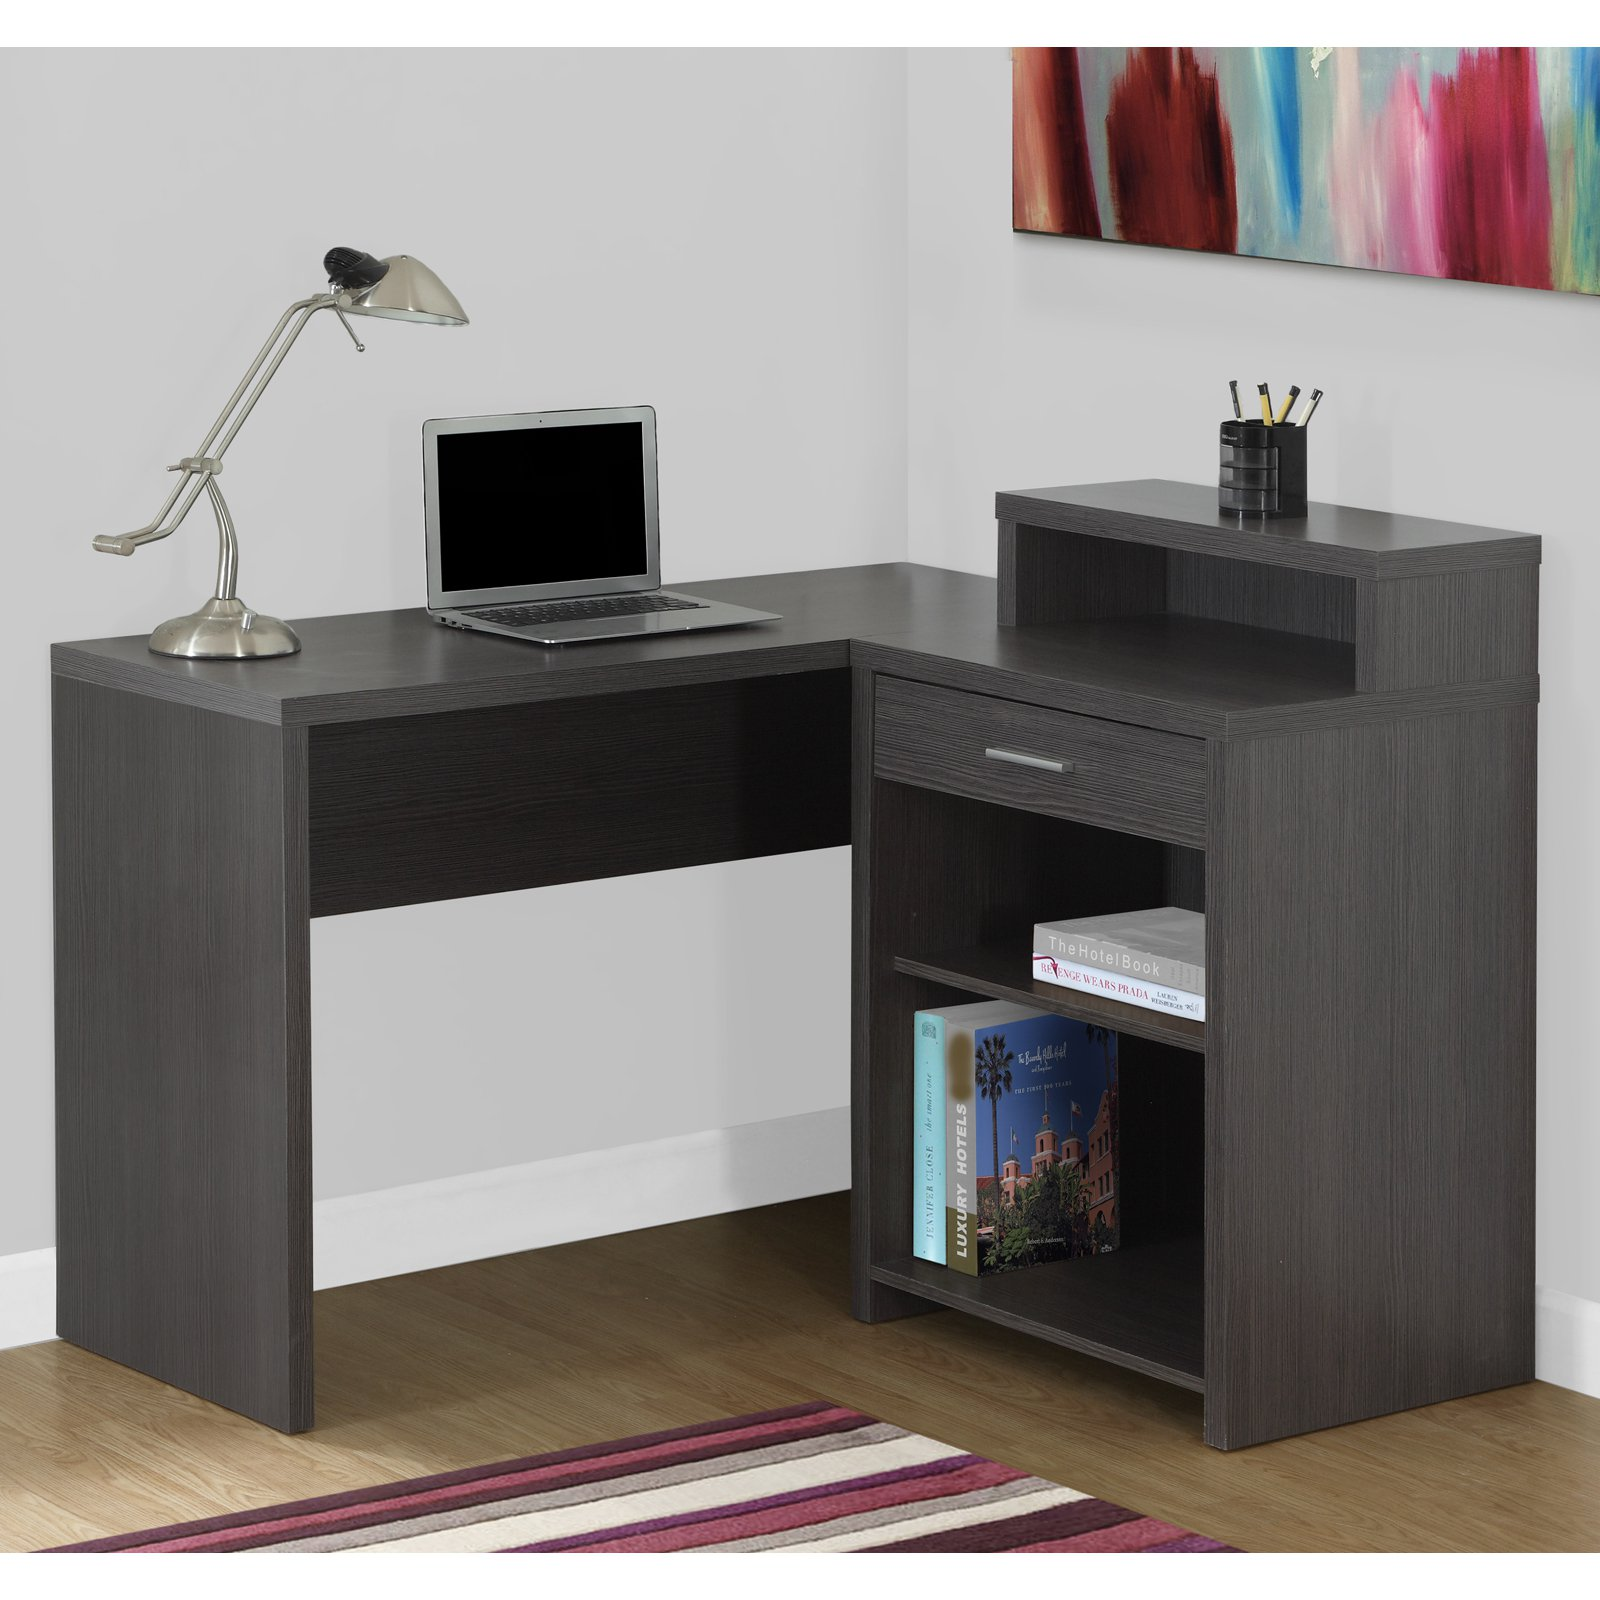 MONARCH - COMPUTER DESK - GREY CORNER WITH STORAGE